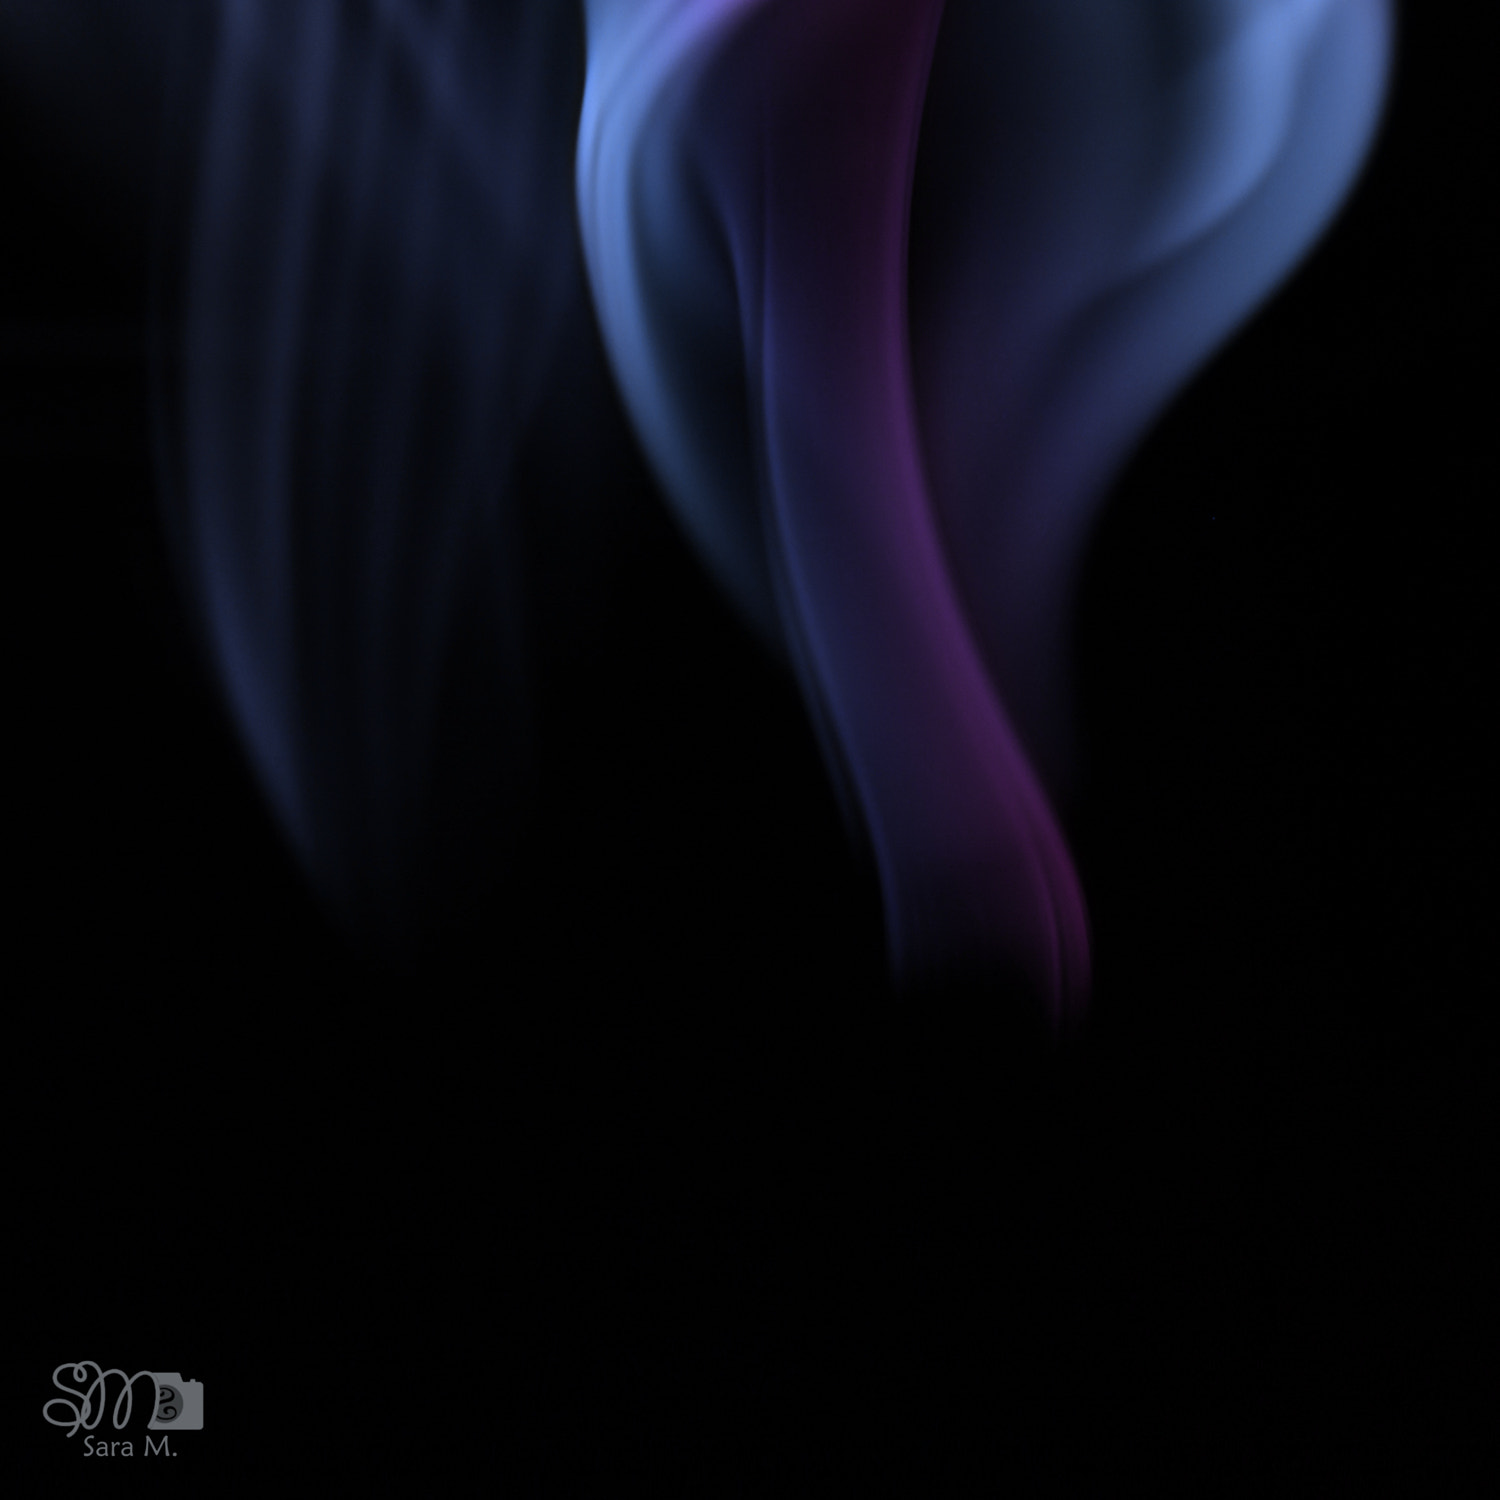 Photograph Blue fire by Sara M. on 500px